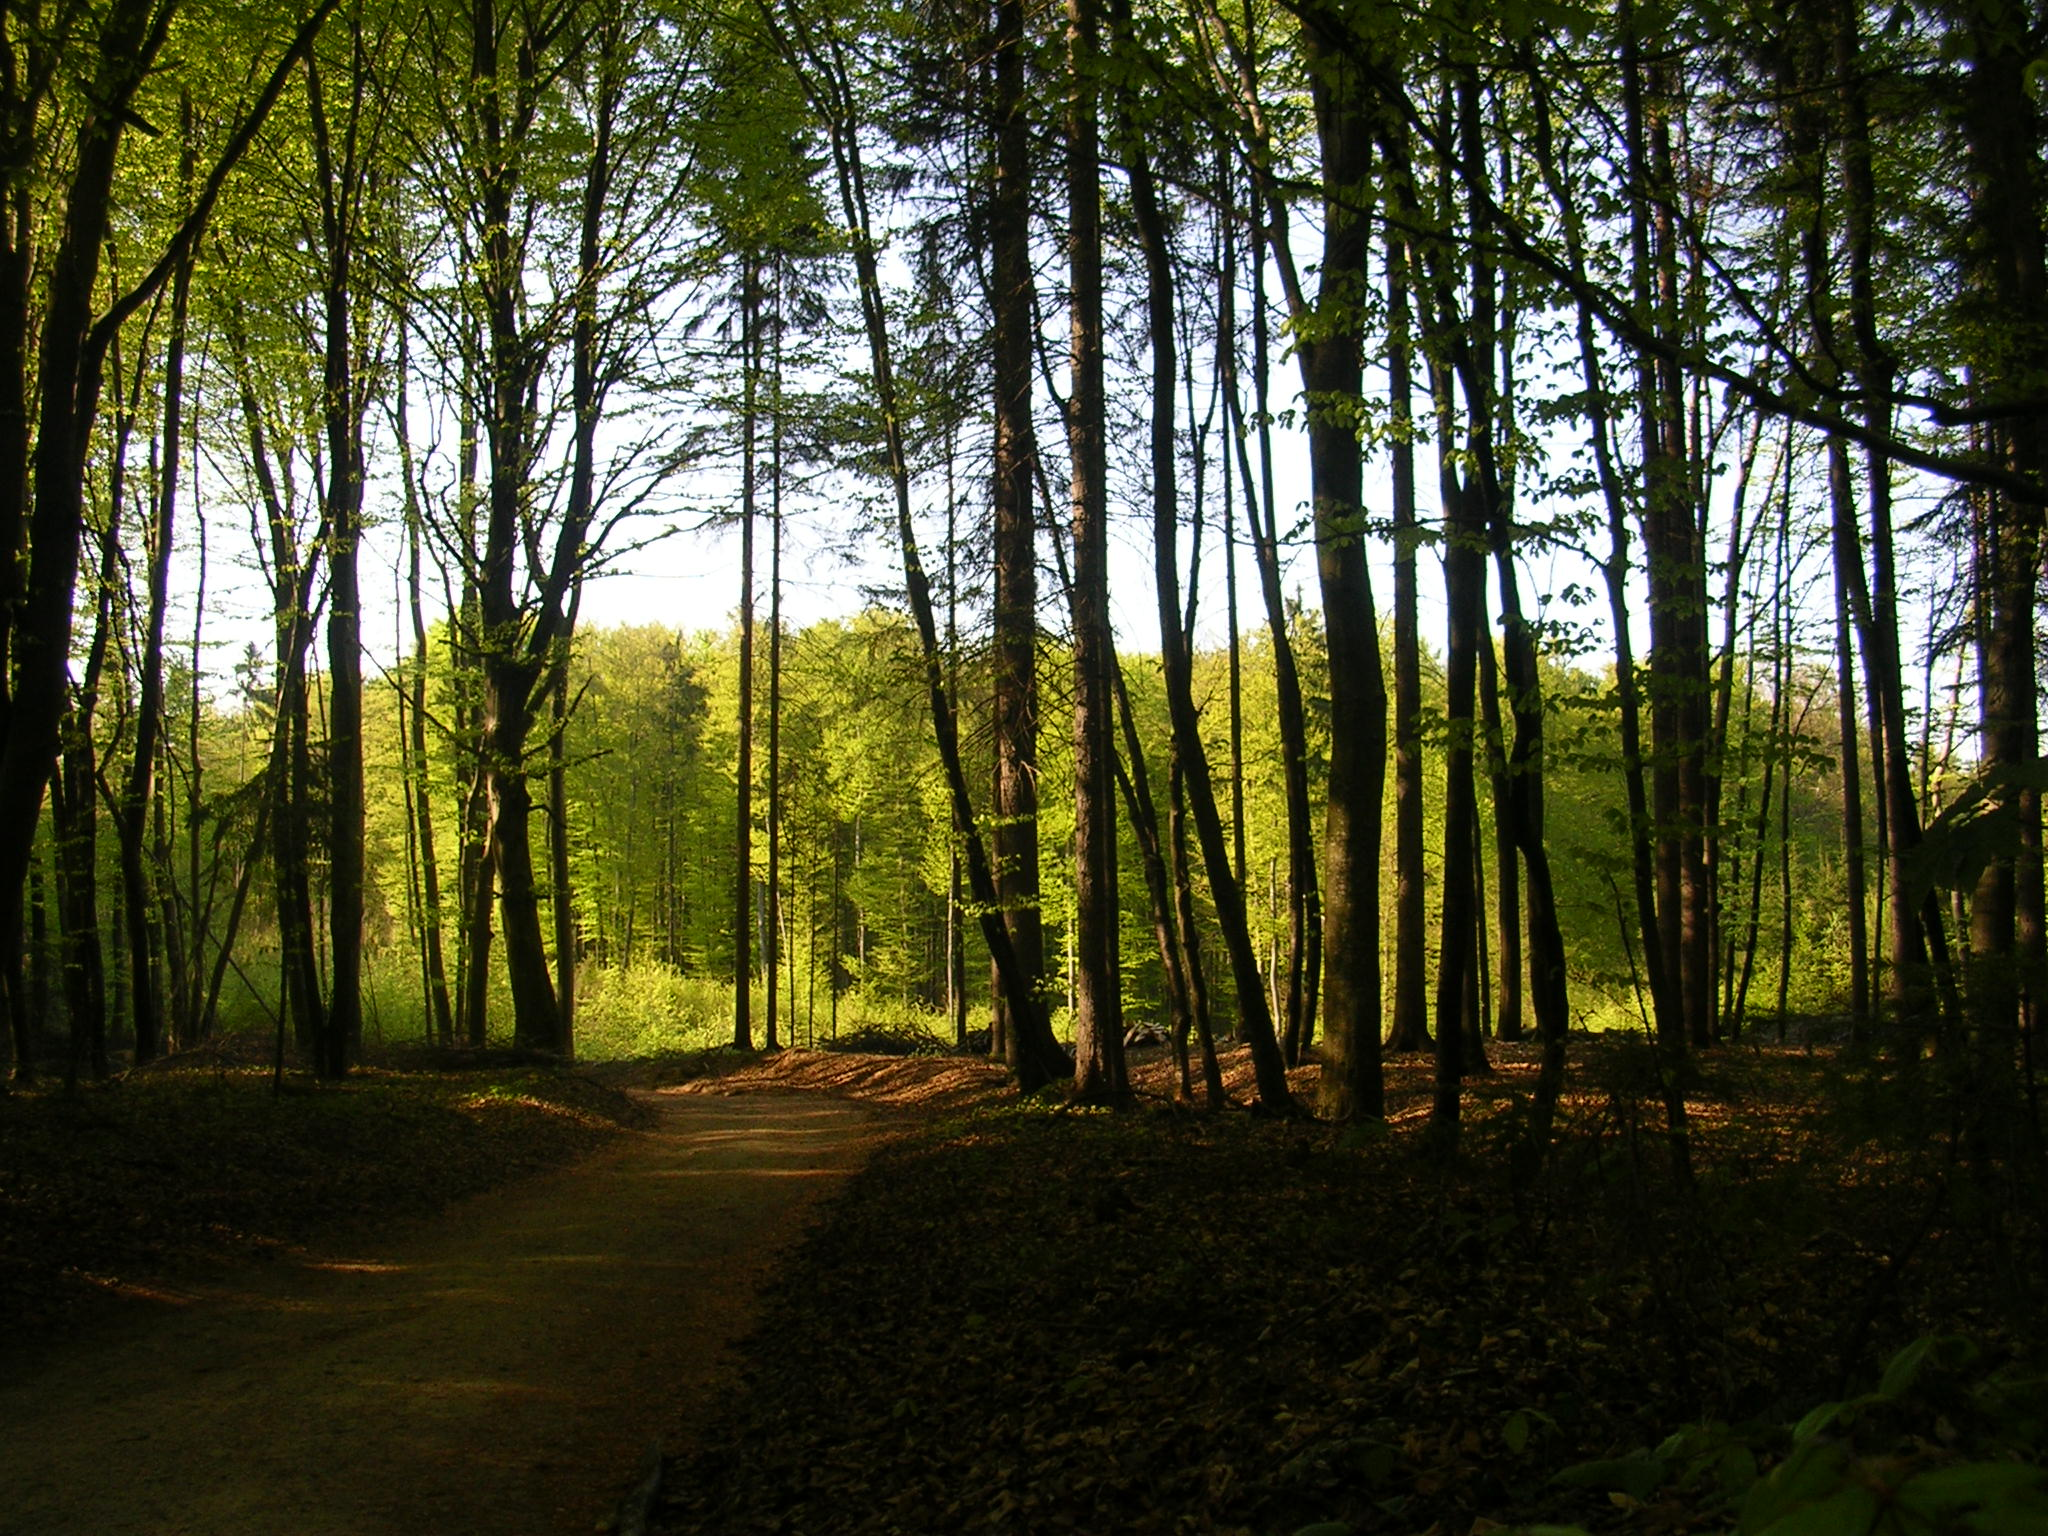 http://upload.wikimedia.org/wikipedia/commons/4/45/VG_forest.jpg